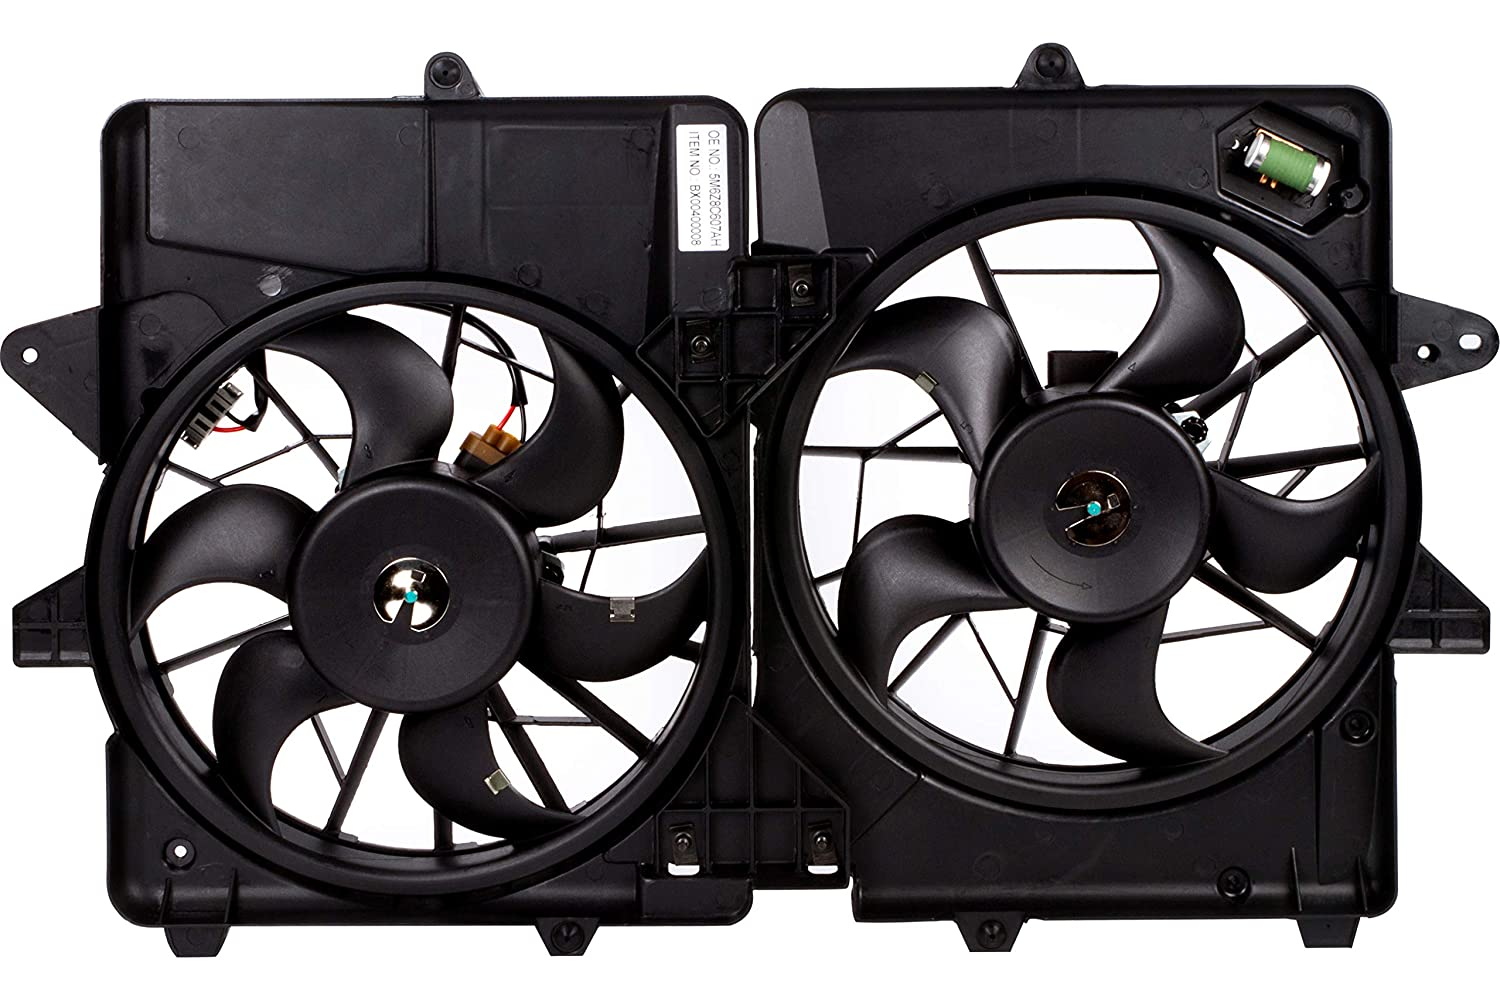 BOXI Engine/Radiator Cooling Fan Assembly For Ford Escape Hybrid 2005-2012, Mercury Mariner Hybrid 2006-2011 5M6Z8C607AH